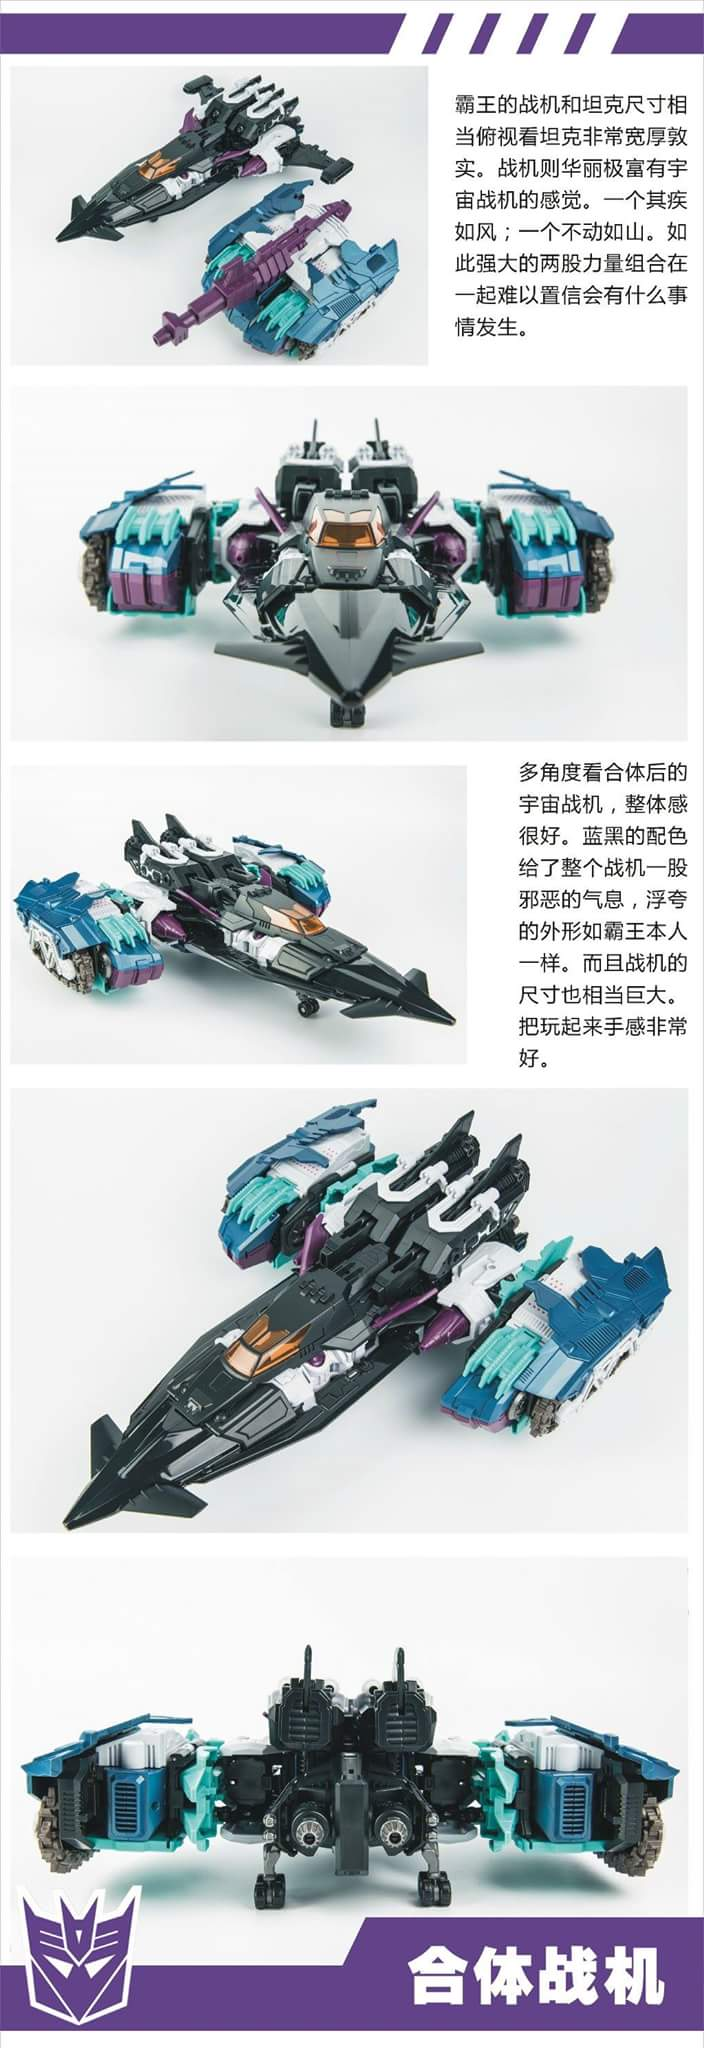 [Mastermind Creations] Produit Tiers - R-17 Carnifex - aka Overlord (TF Masterforce) - Page 3 79LbmBXb